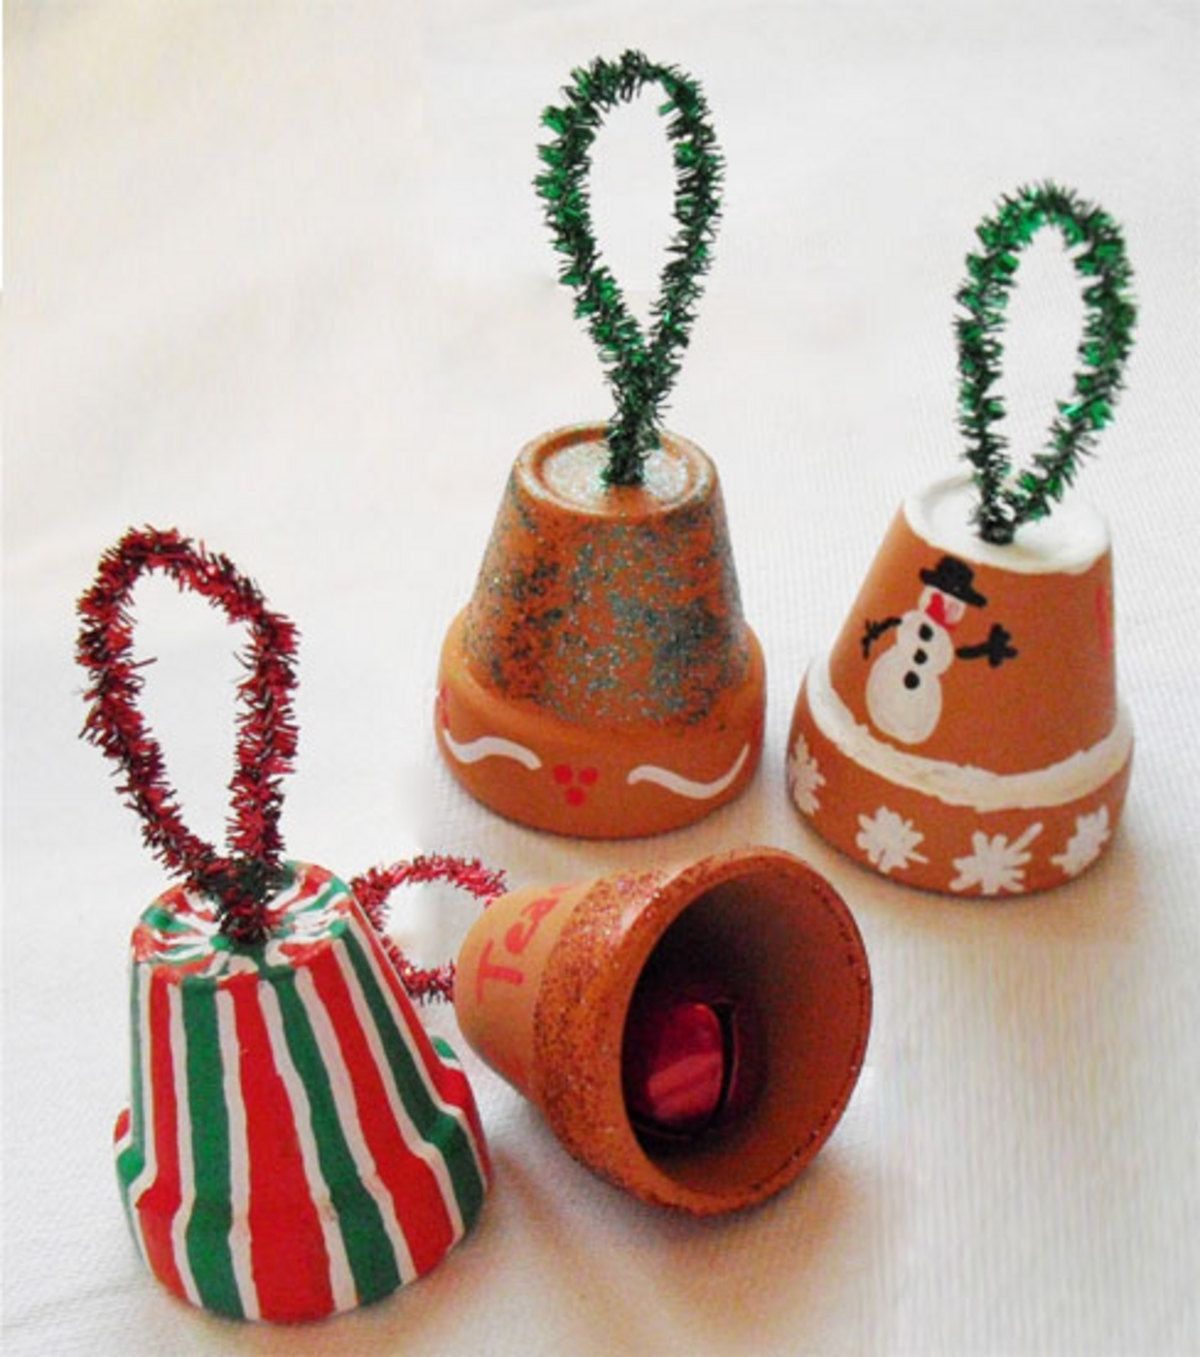 Bell christmas ornament - Christmas Bell Ornaments Inexpensive Holiday Activity For Kids Would Be Awesome At A Winter